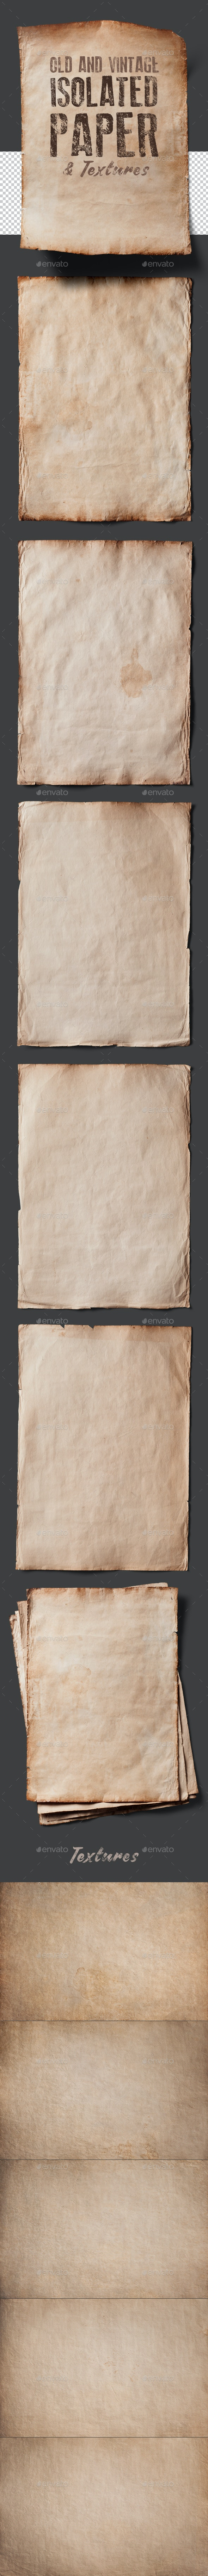 Old Isolated Papers and Textures - Paper Textures